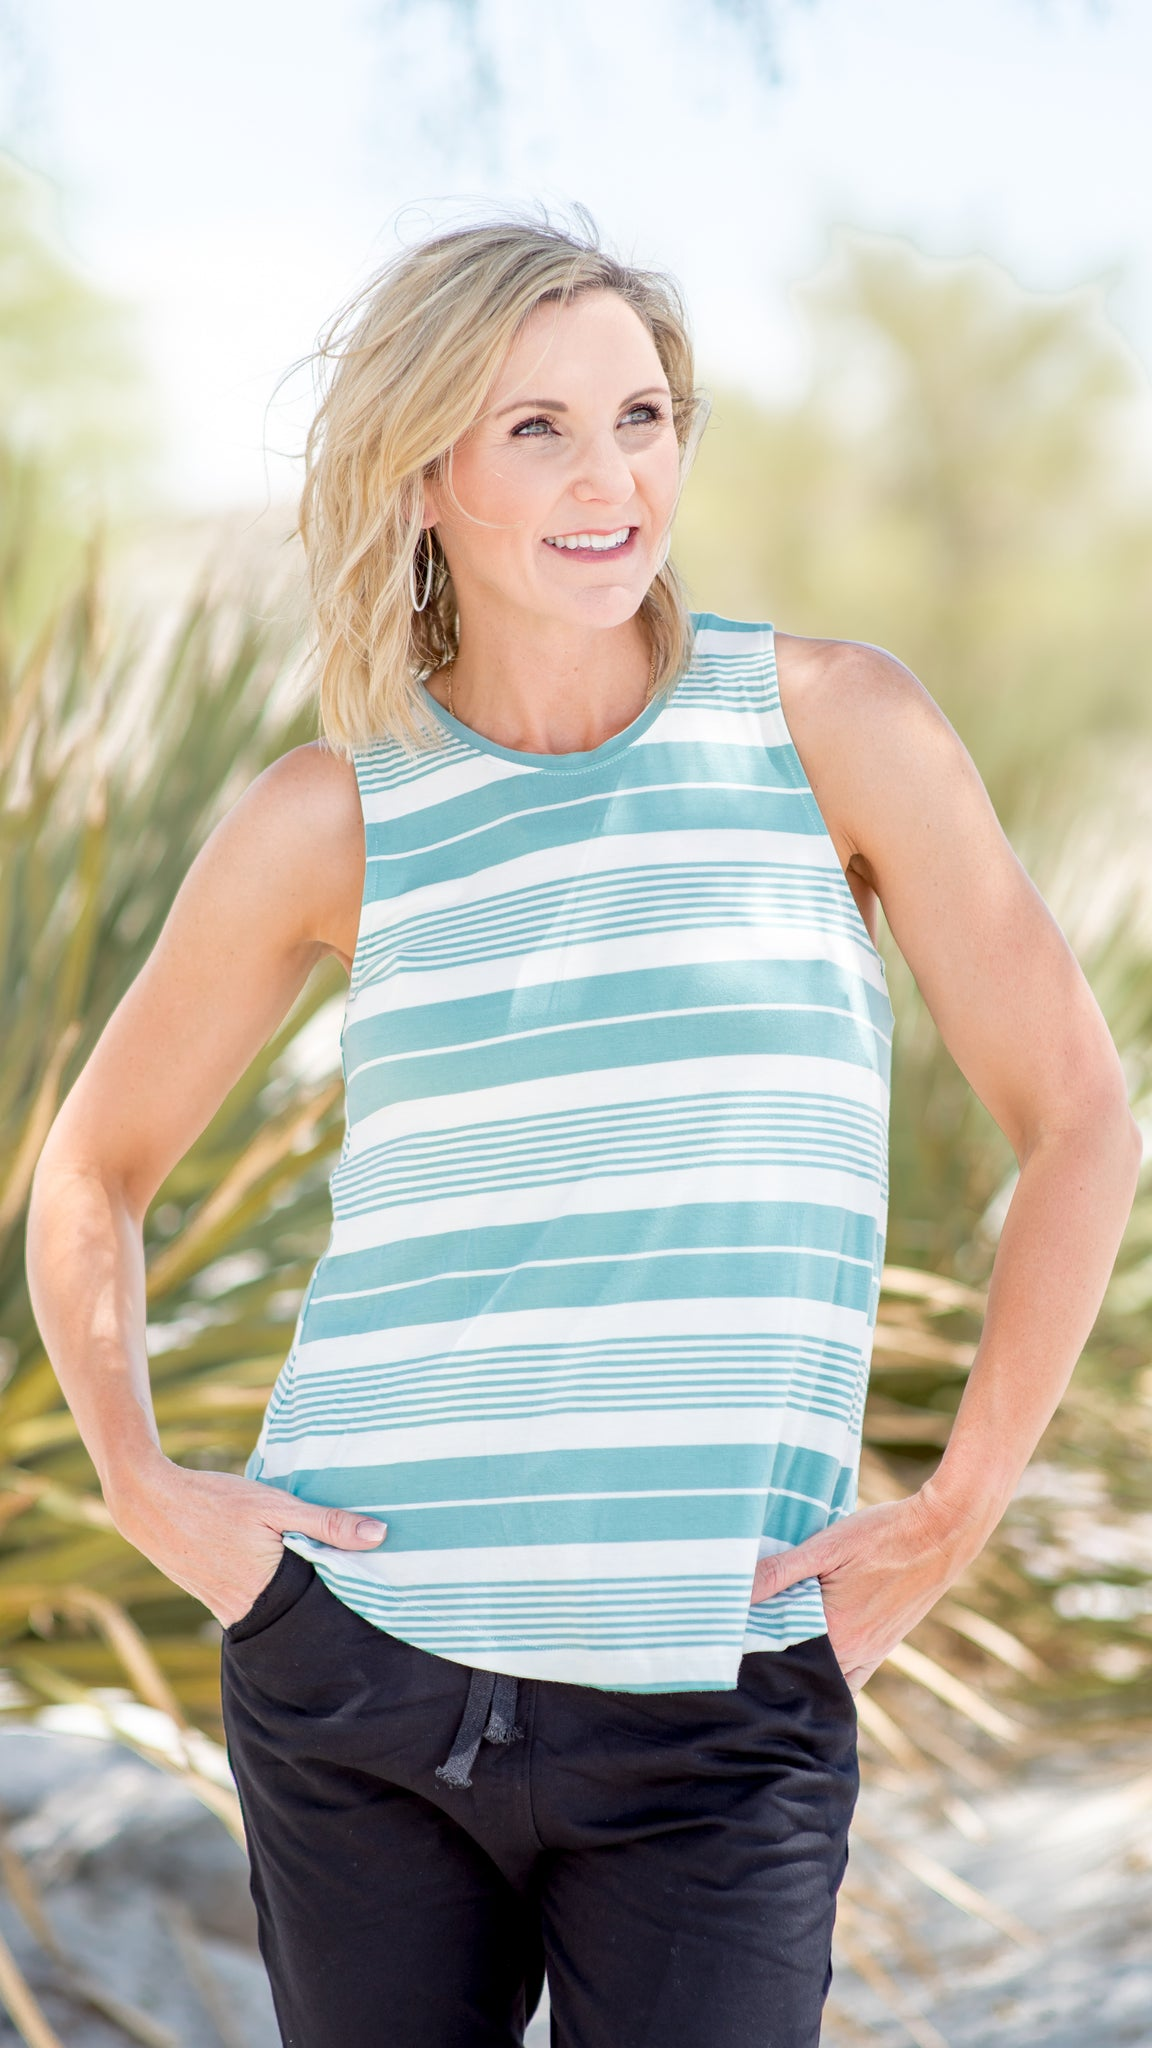 Aqua Marine Striped Tank Top